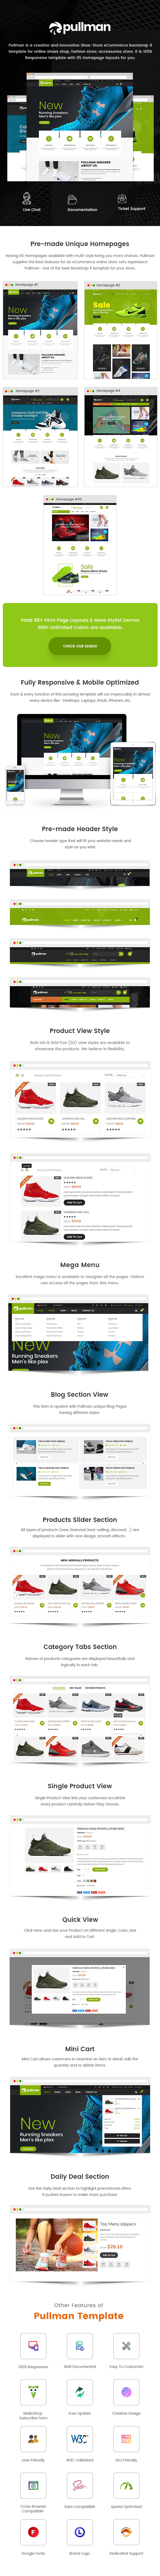 Pullman - Shoes Store HTML Template - 1